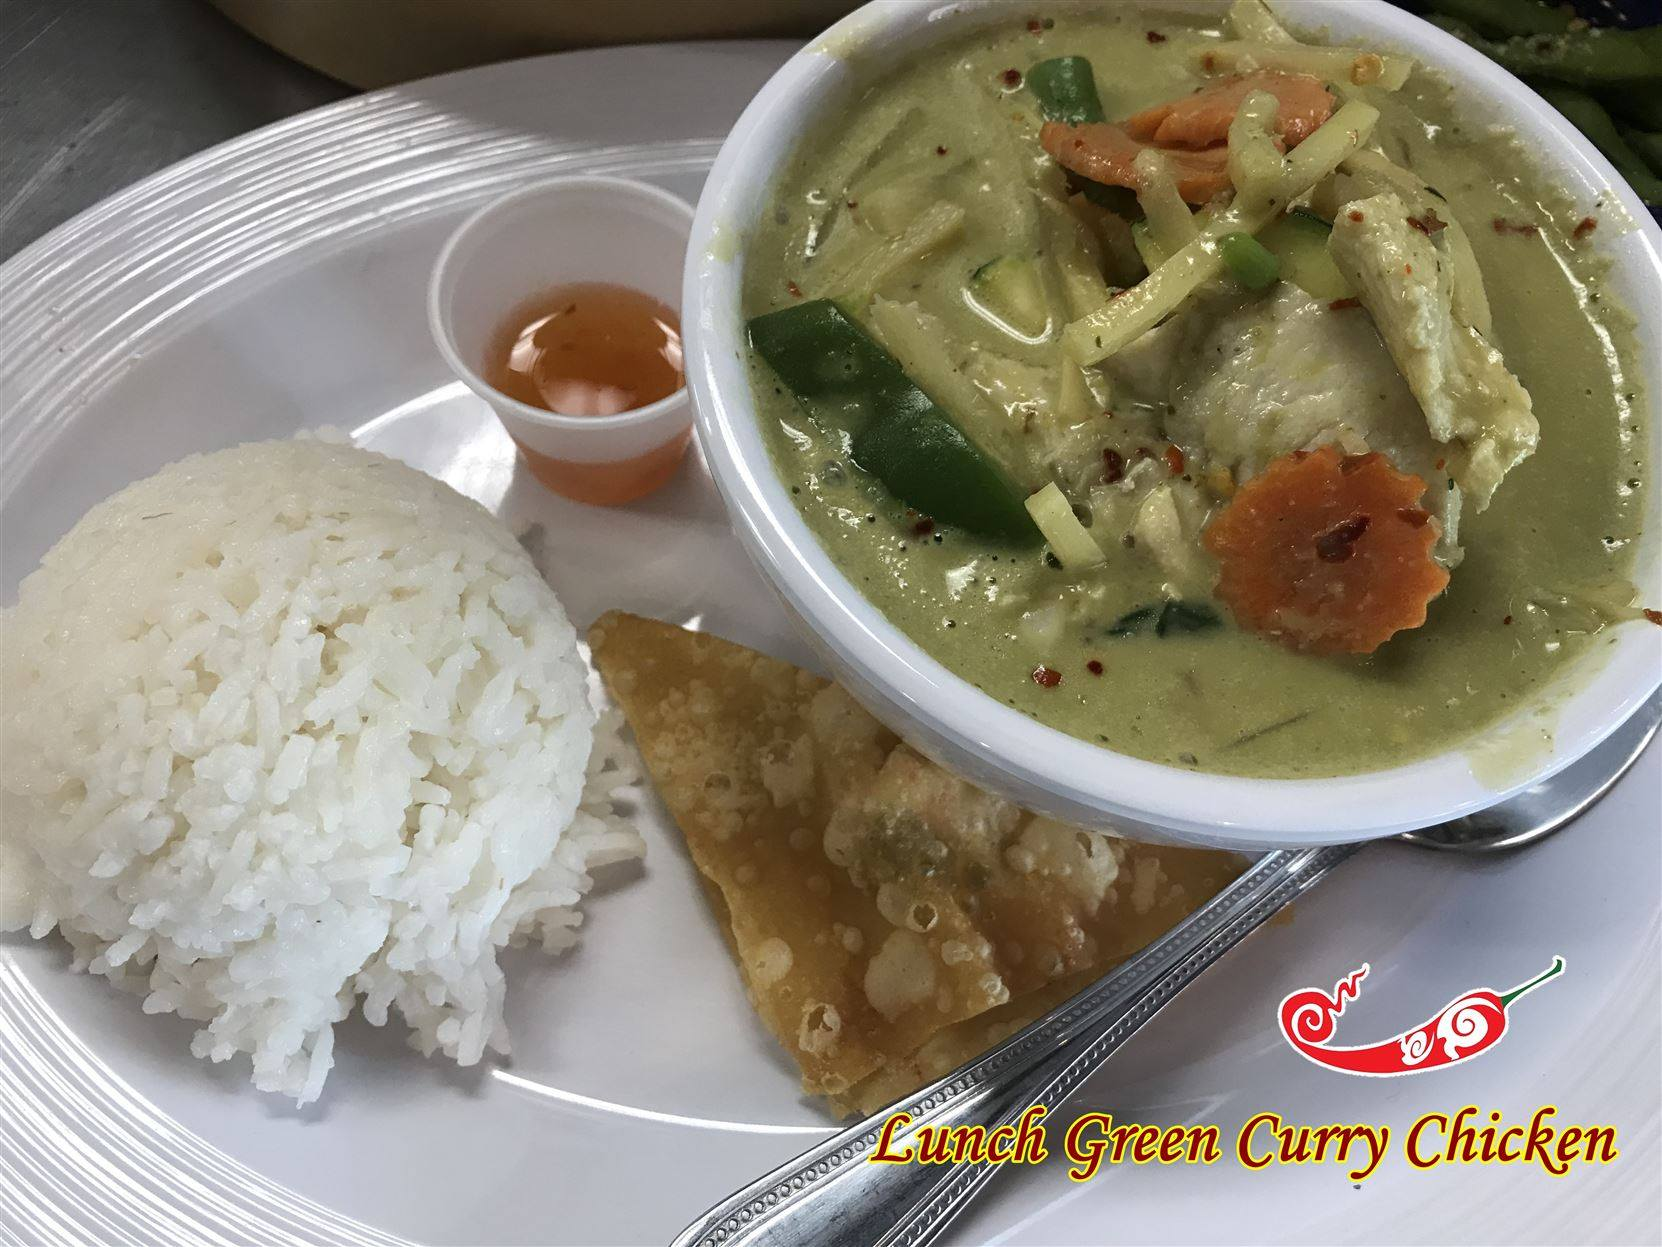 L14-Green Curry (Lunch) Image